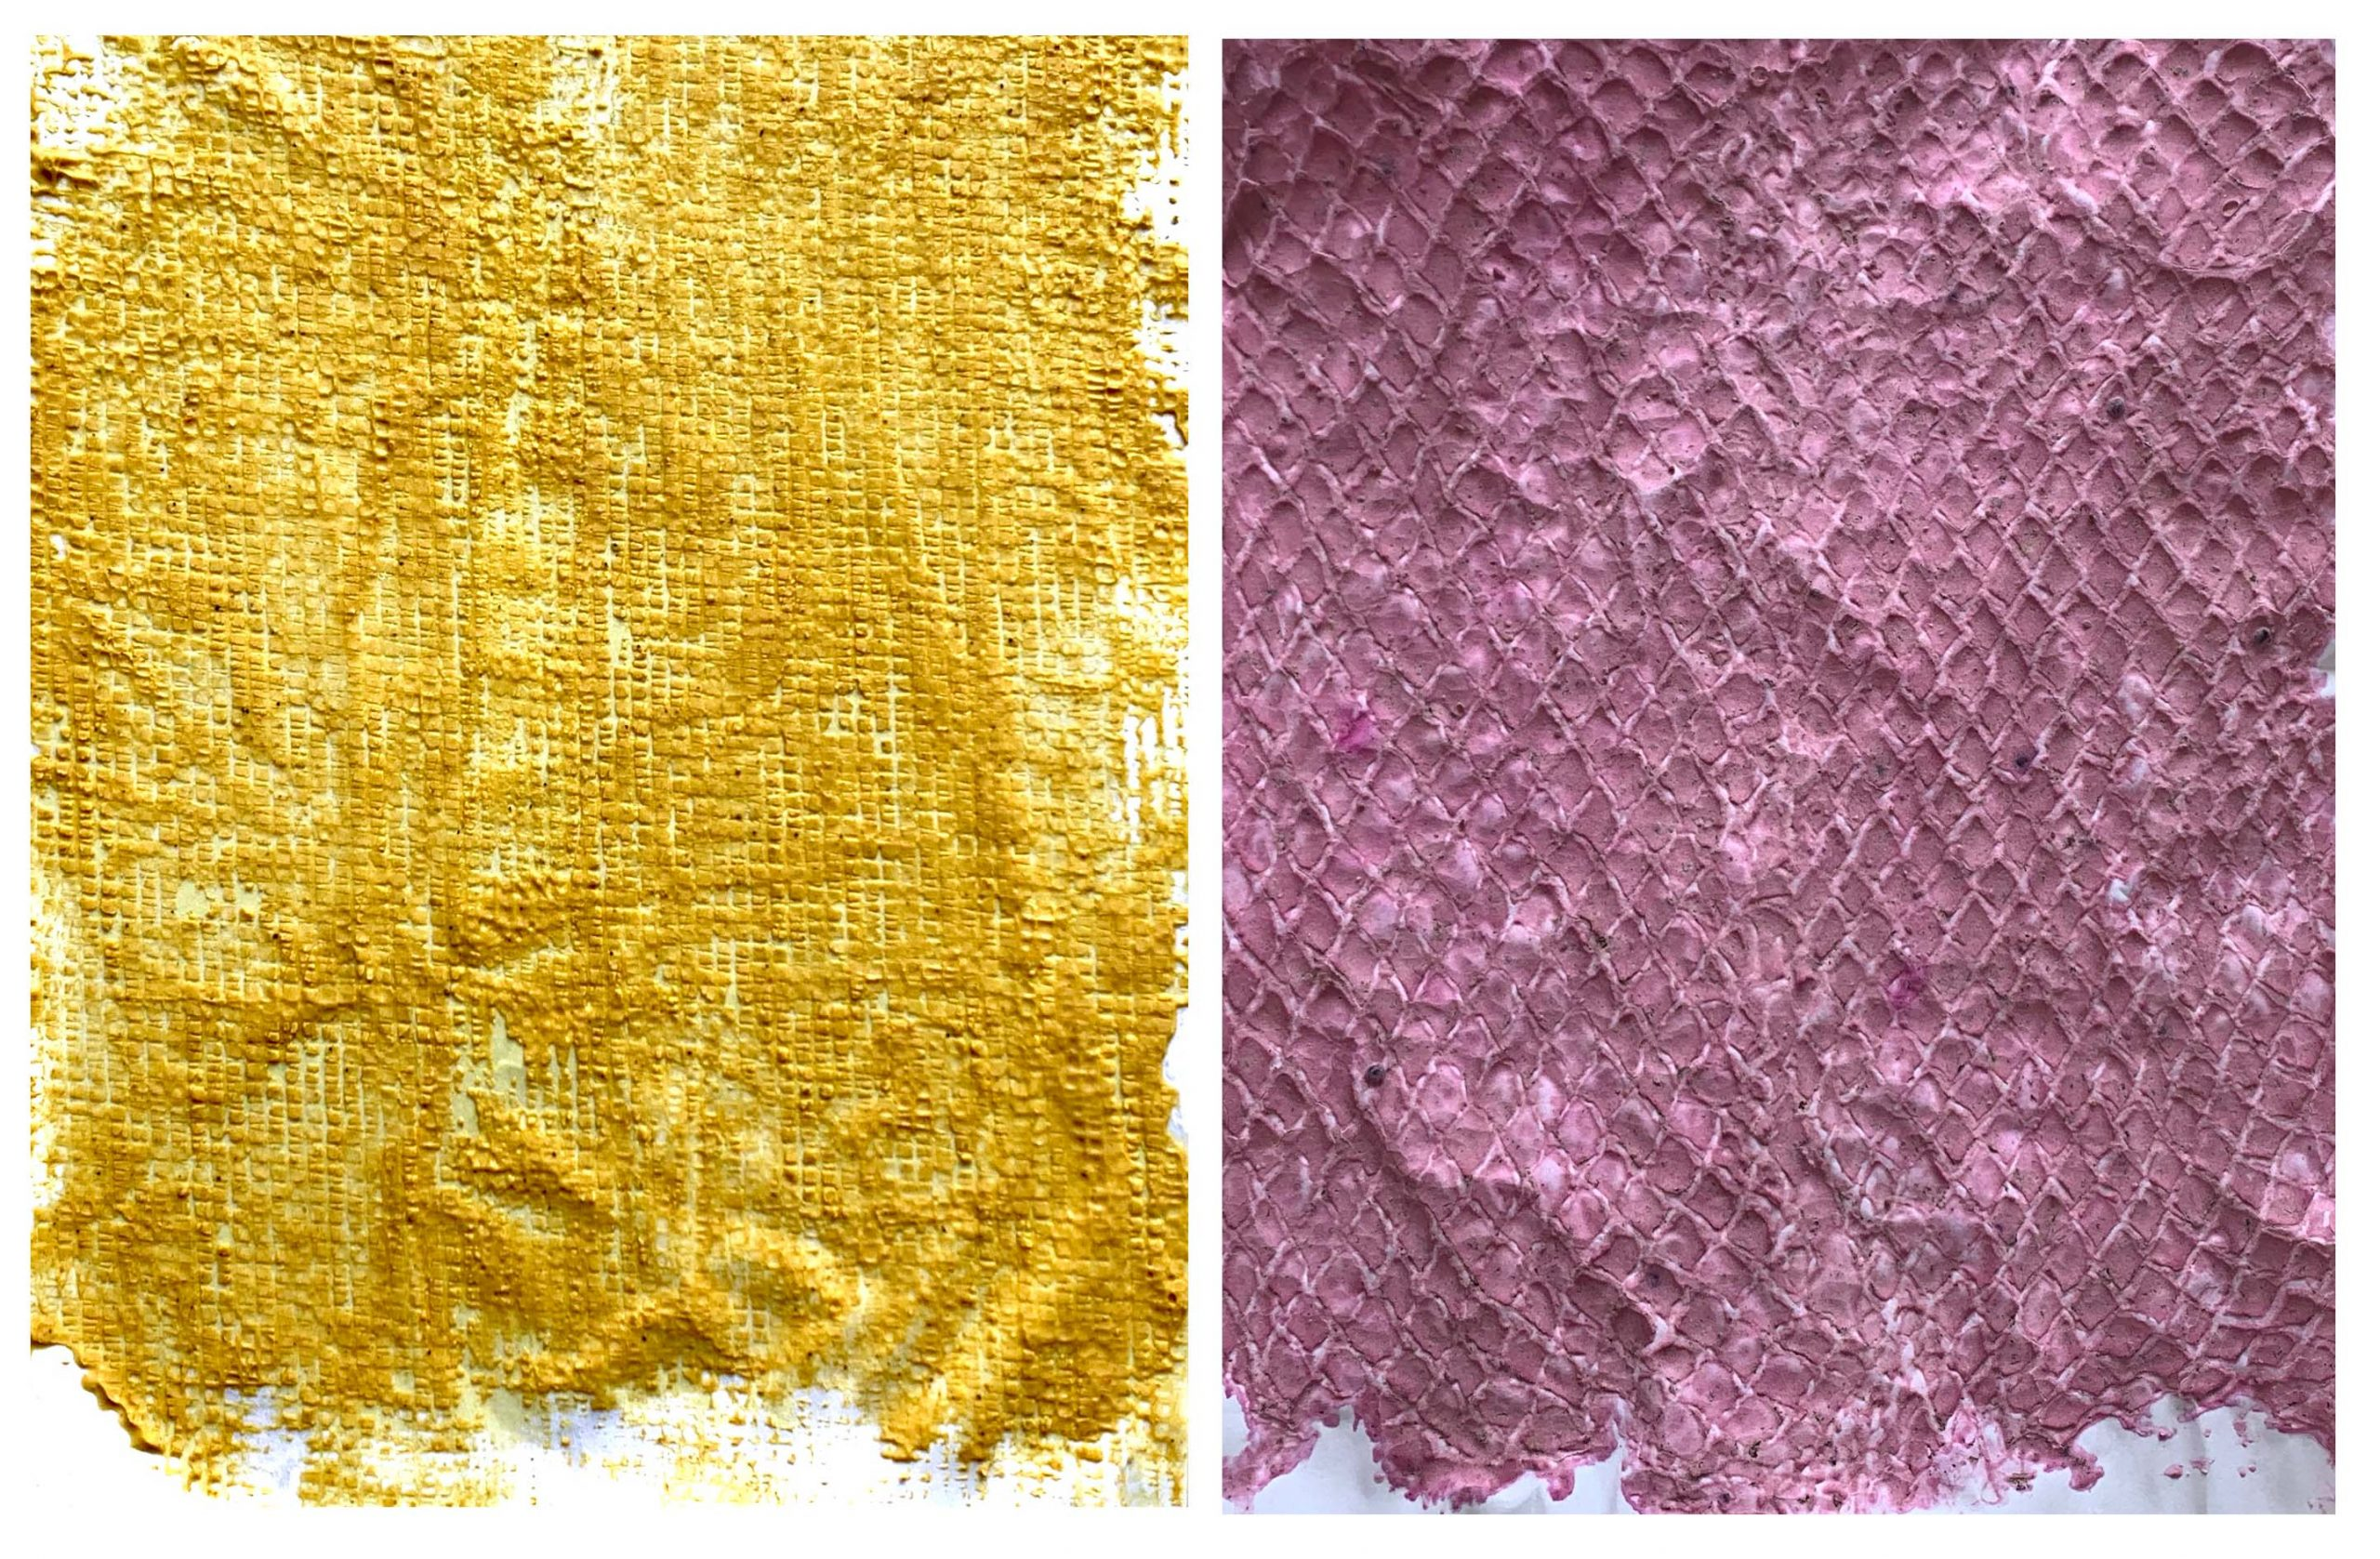 On the left is a mustard yellow textured print; on the right is a magenta textured print.